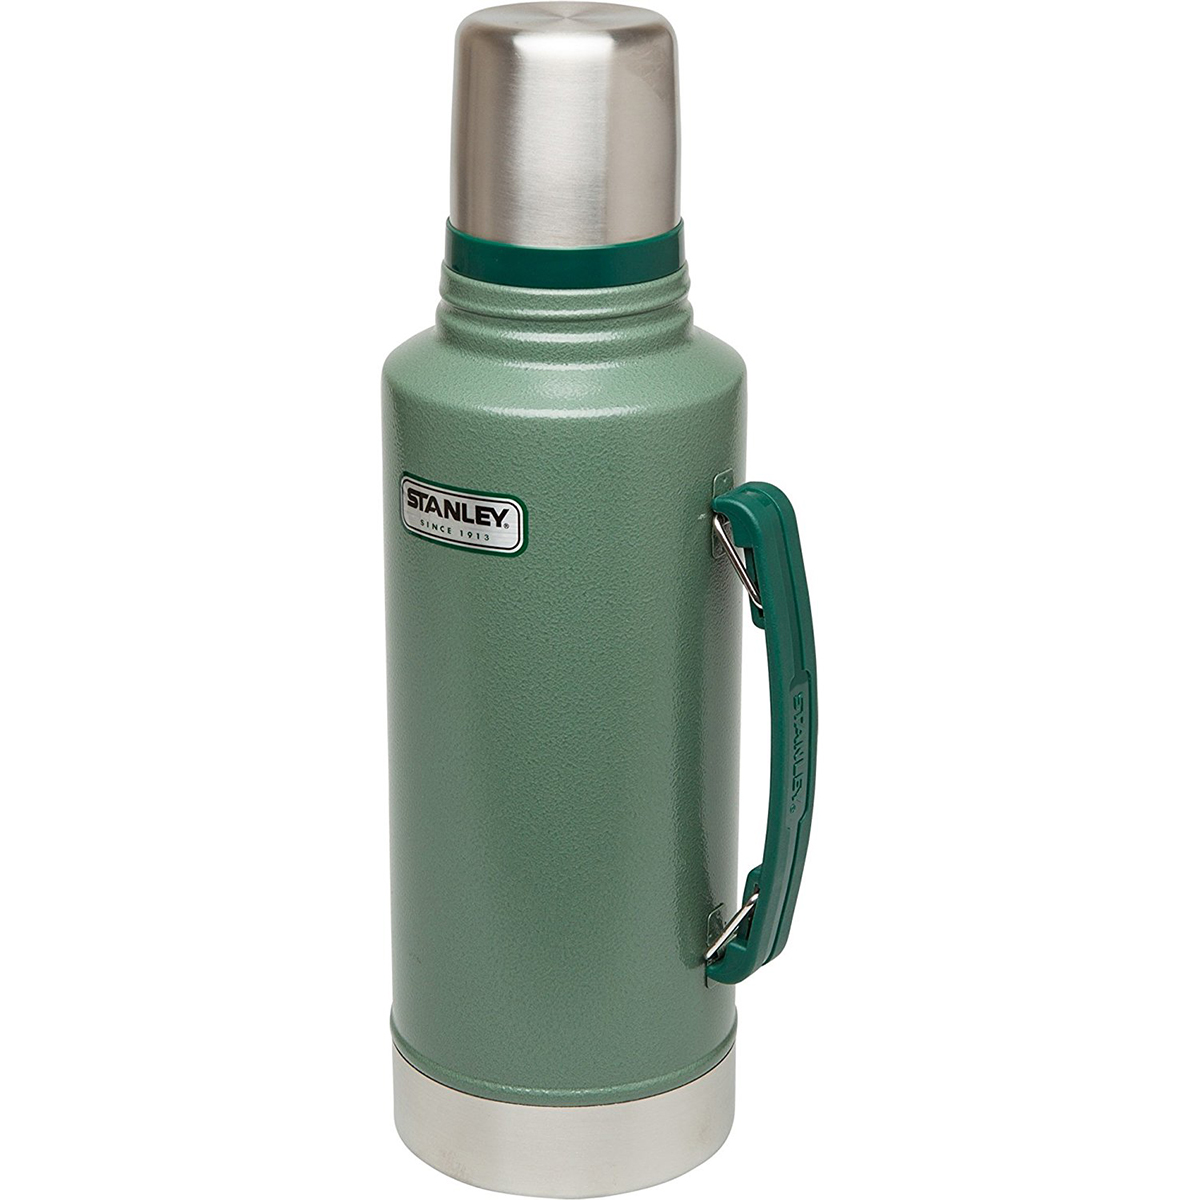 Details about Stanley Classic Vacuum Insulated Stainless Steel Thermos